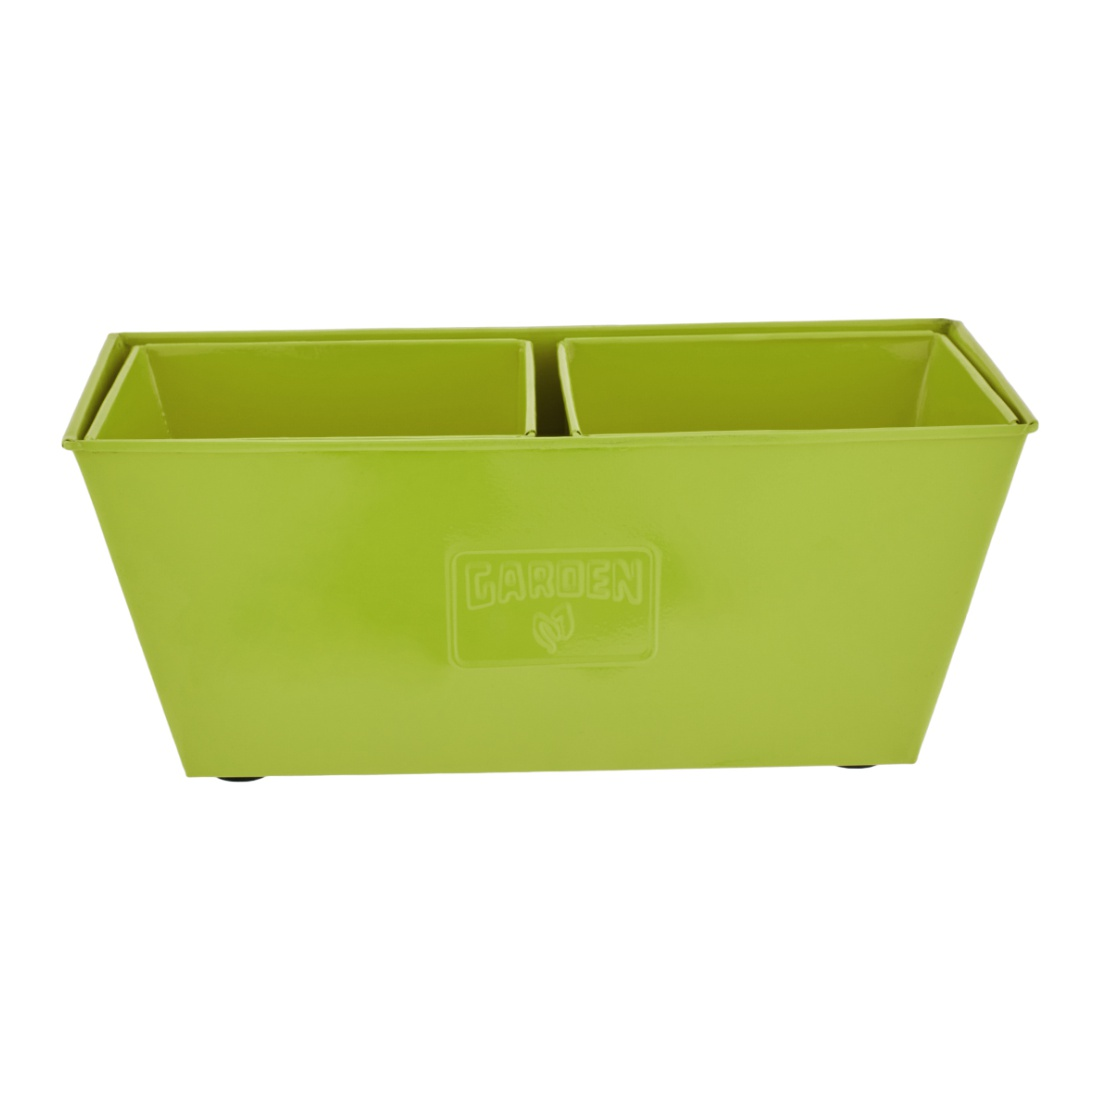 Aria Trapezium Planter Big Green Set of 3 Metal Pots & Planters in Green Colour by Living Essence